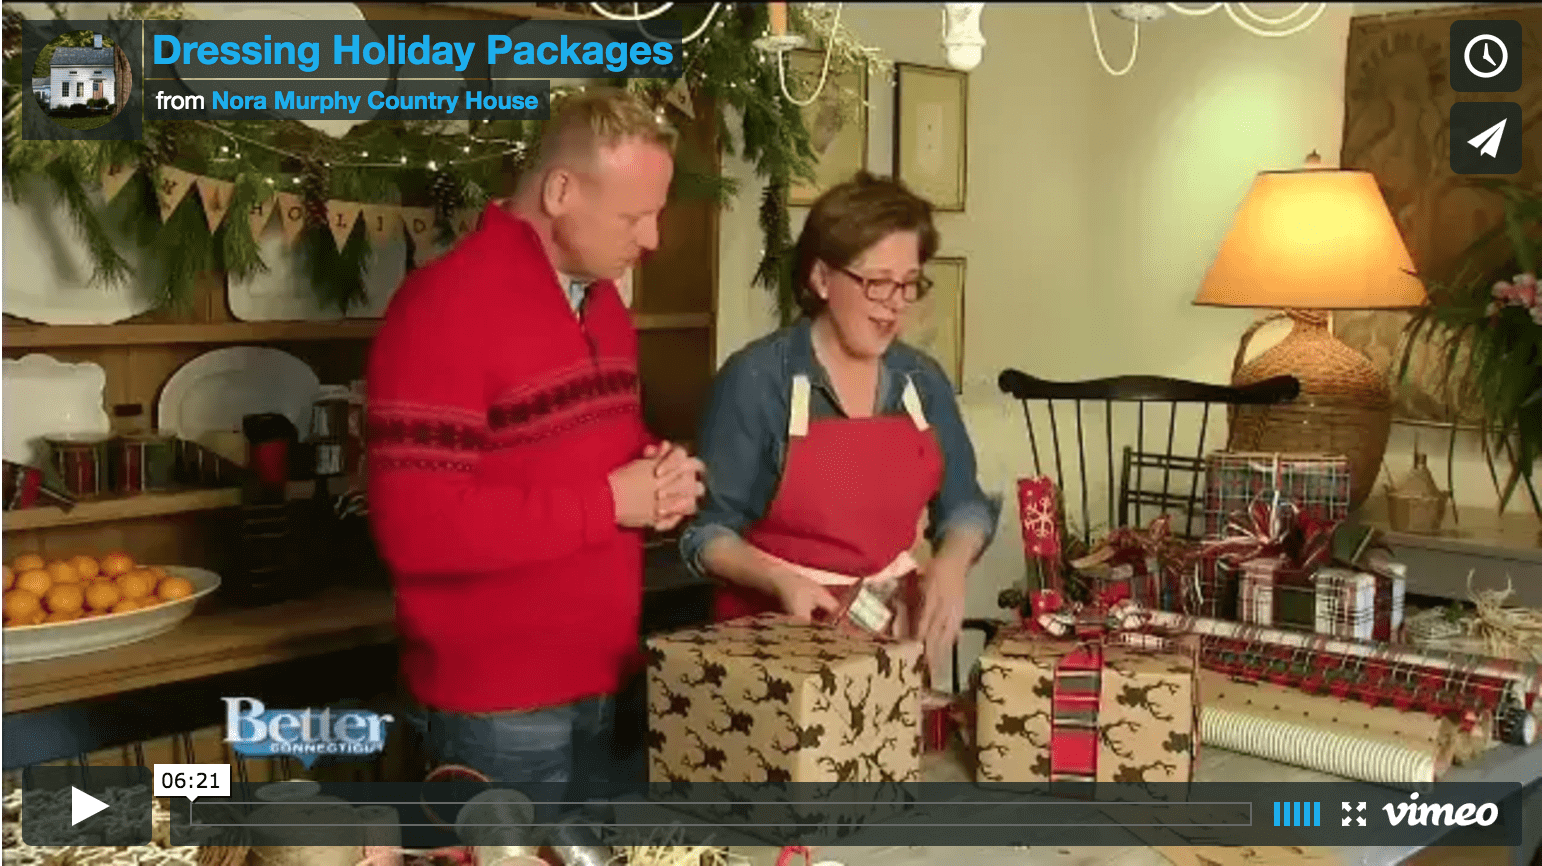 Dressing Holiday Packages